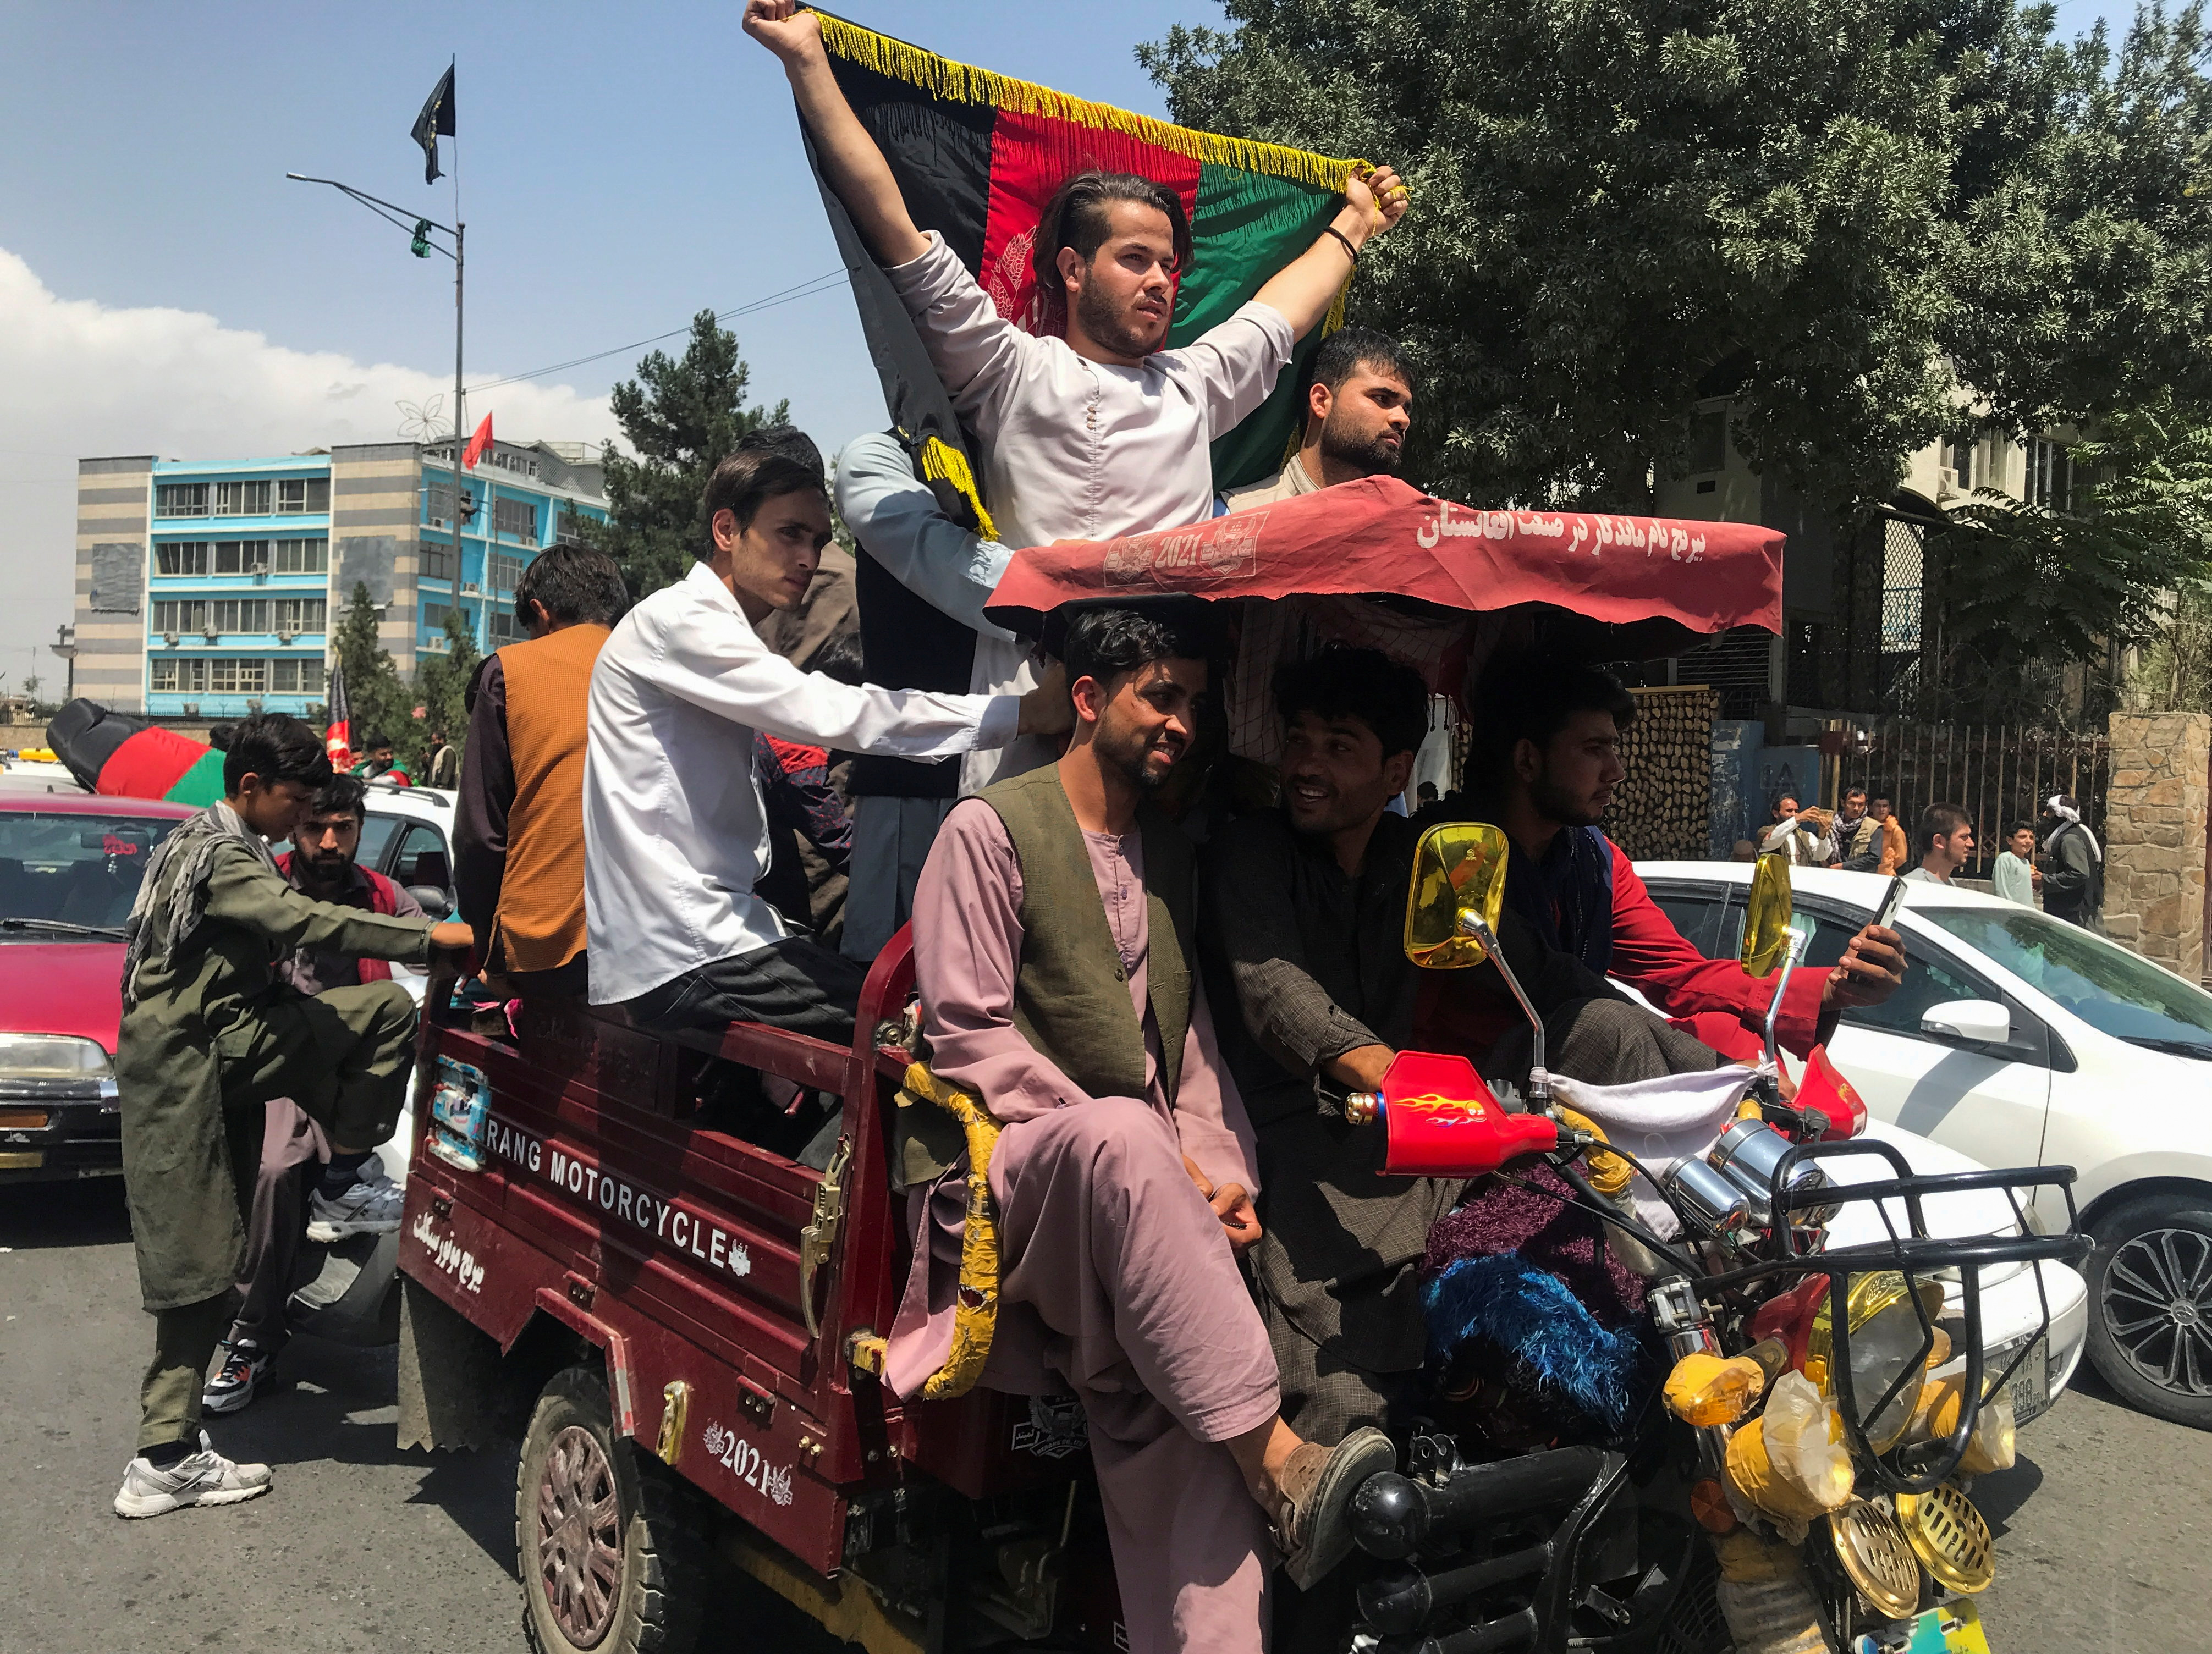 People carry the national flag at a protest held during the Afghan Independence Day in Kabul, Afghanistan August 19, 2021. REUTERS/Stringer